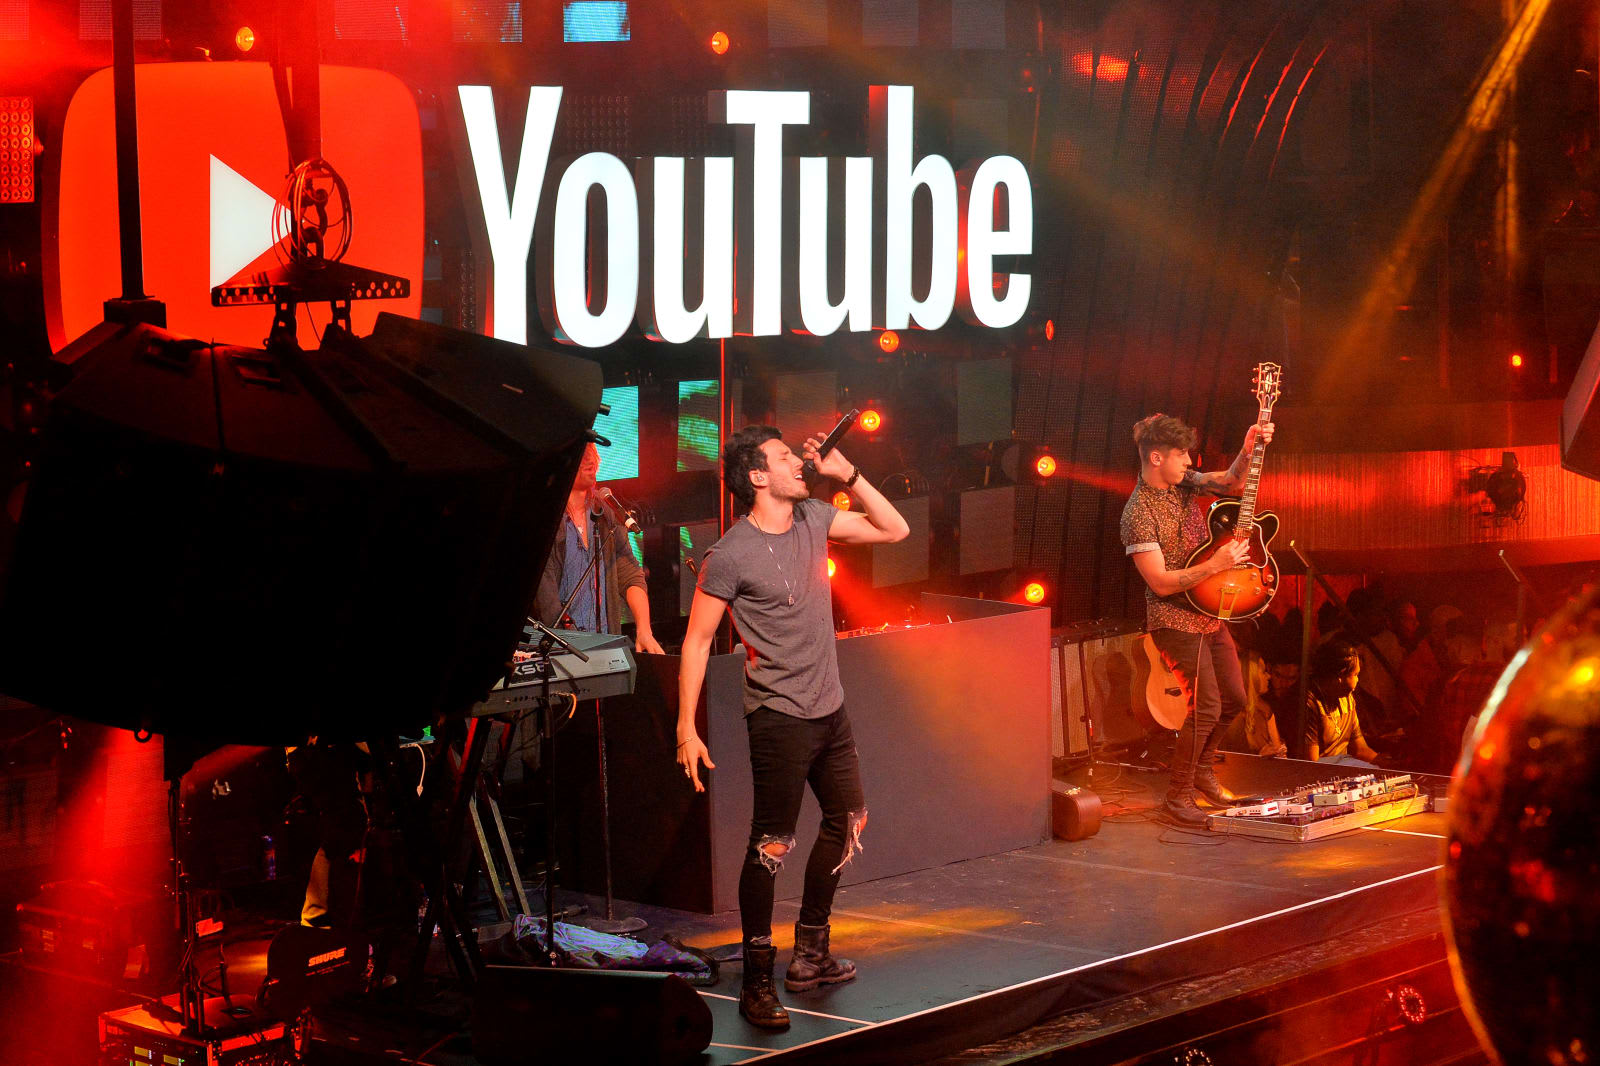 Youtube S Unified Artist Channels Clean Up Its Music Mess